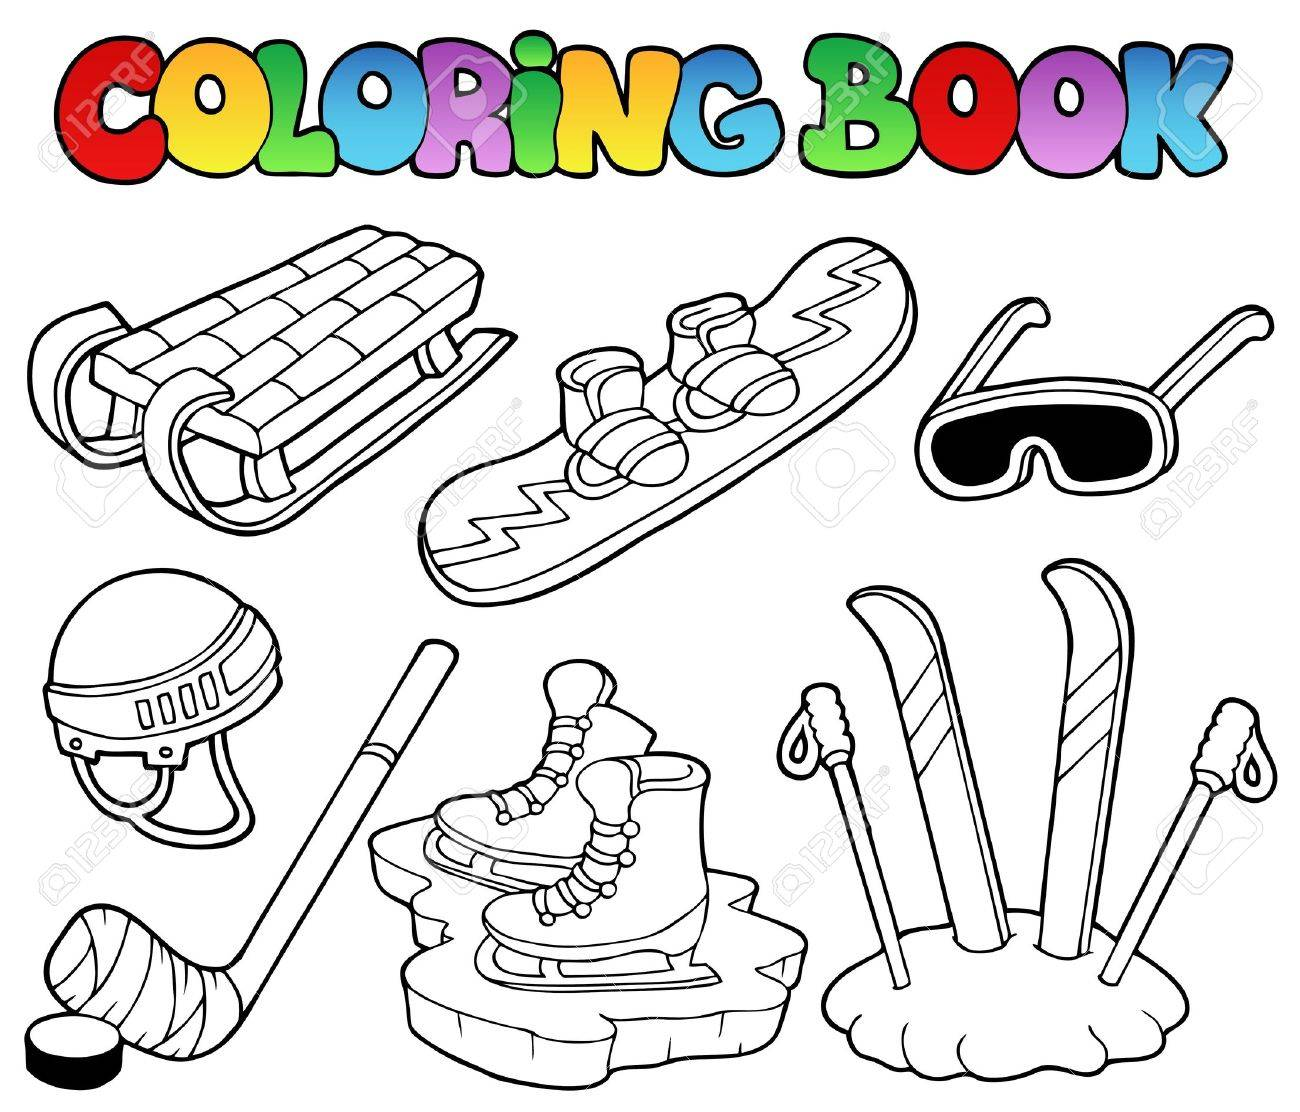 coloring book winter sports gear vector illustration stock vector 11124931 - Sports Coloring Book